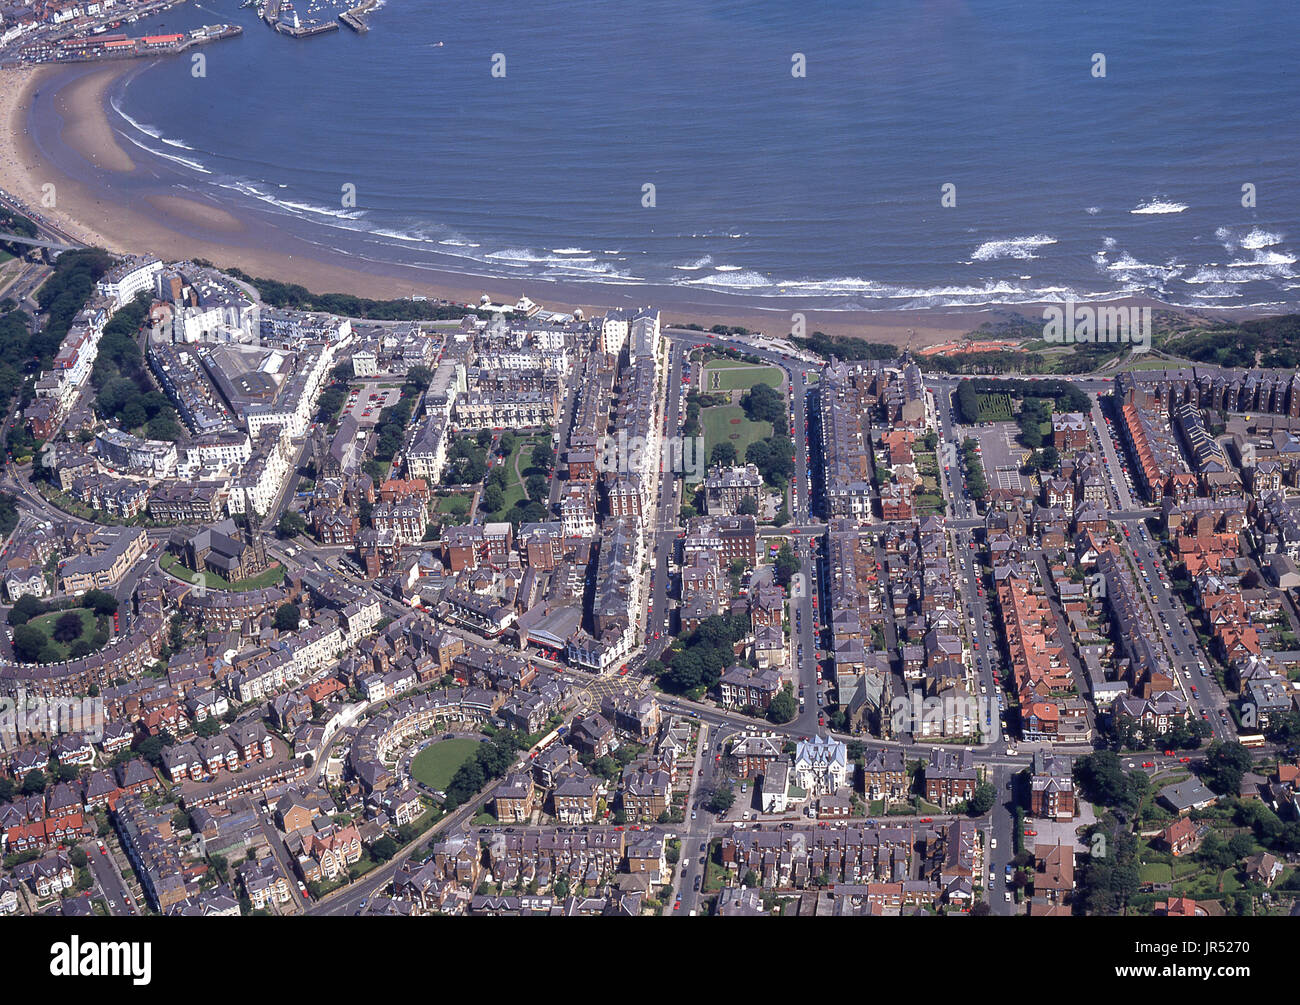 Aerial photo of part of the Scarborough South Cliff area of Scarborough showing the south Bay Beach  and Filey Road - Stock Image